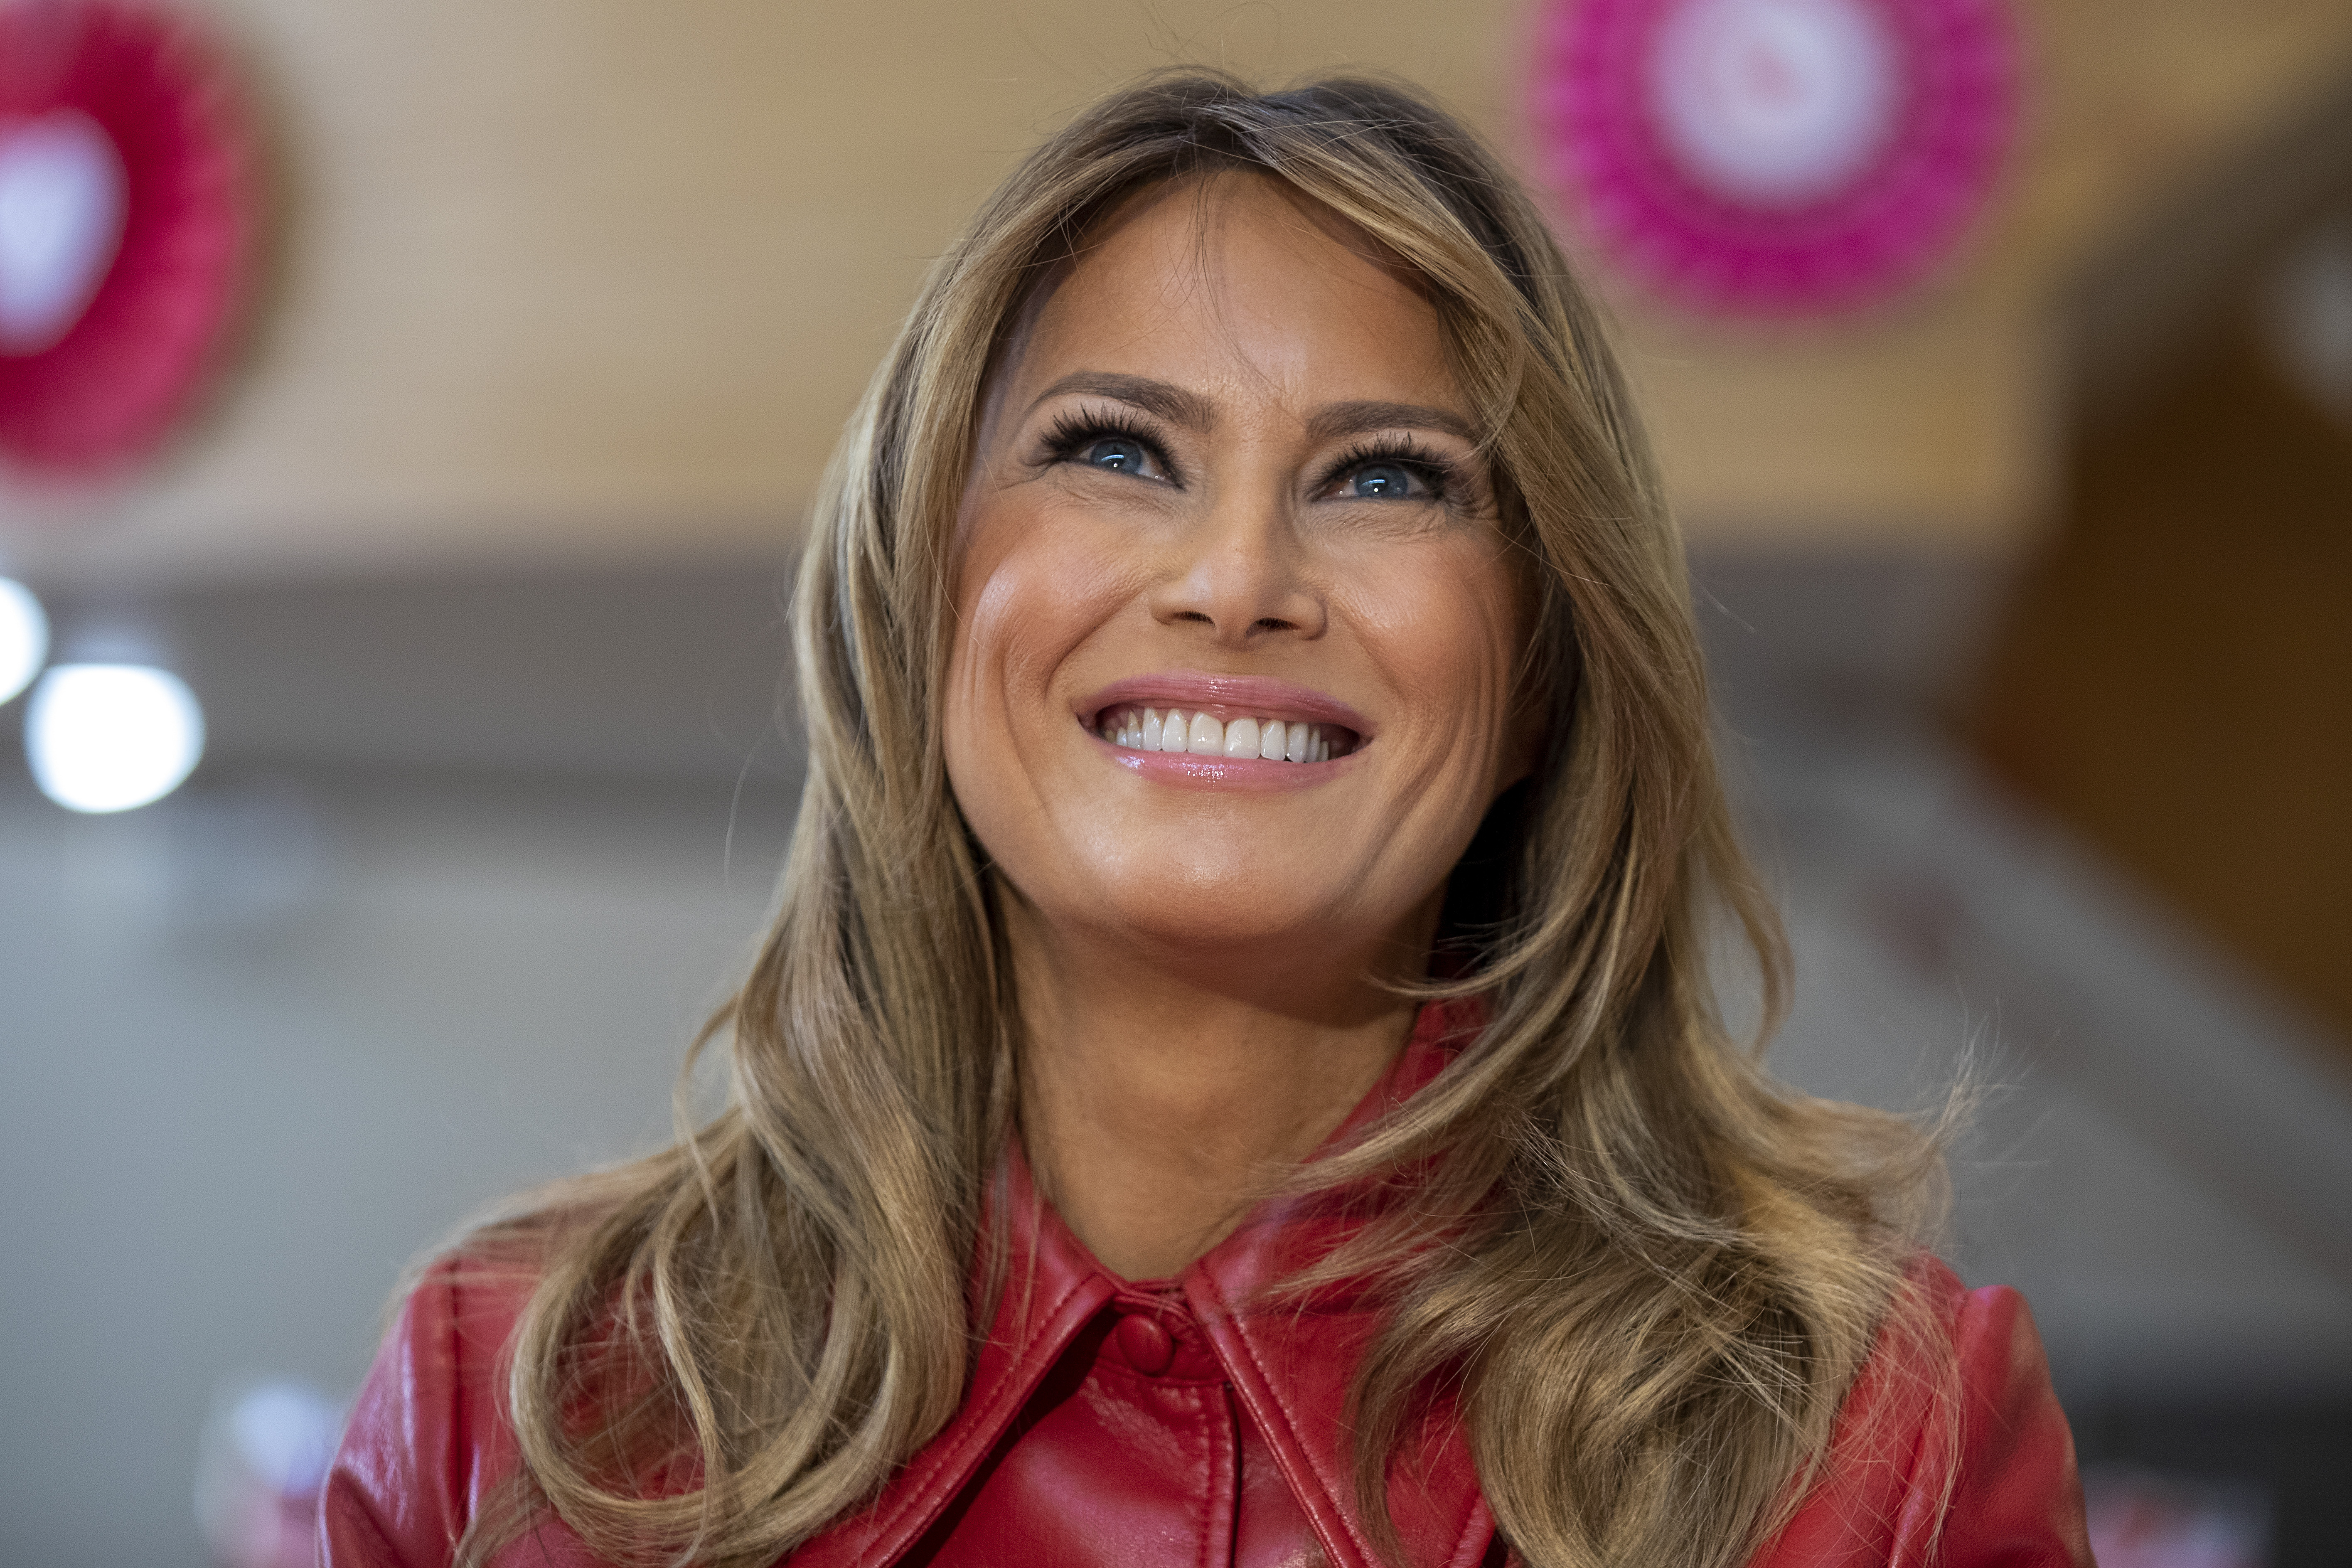 First Lady Melania Trump in Bethesda, Maryland. (Photo by Tasos Katopodis/Getty Images)